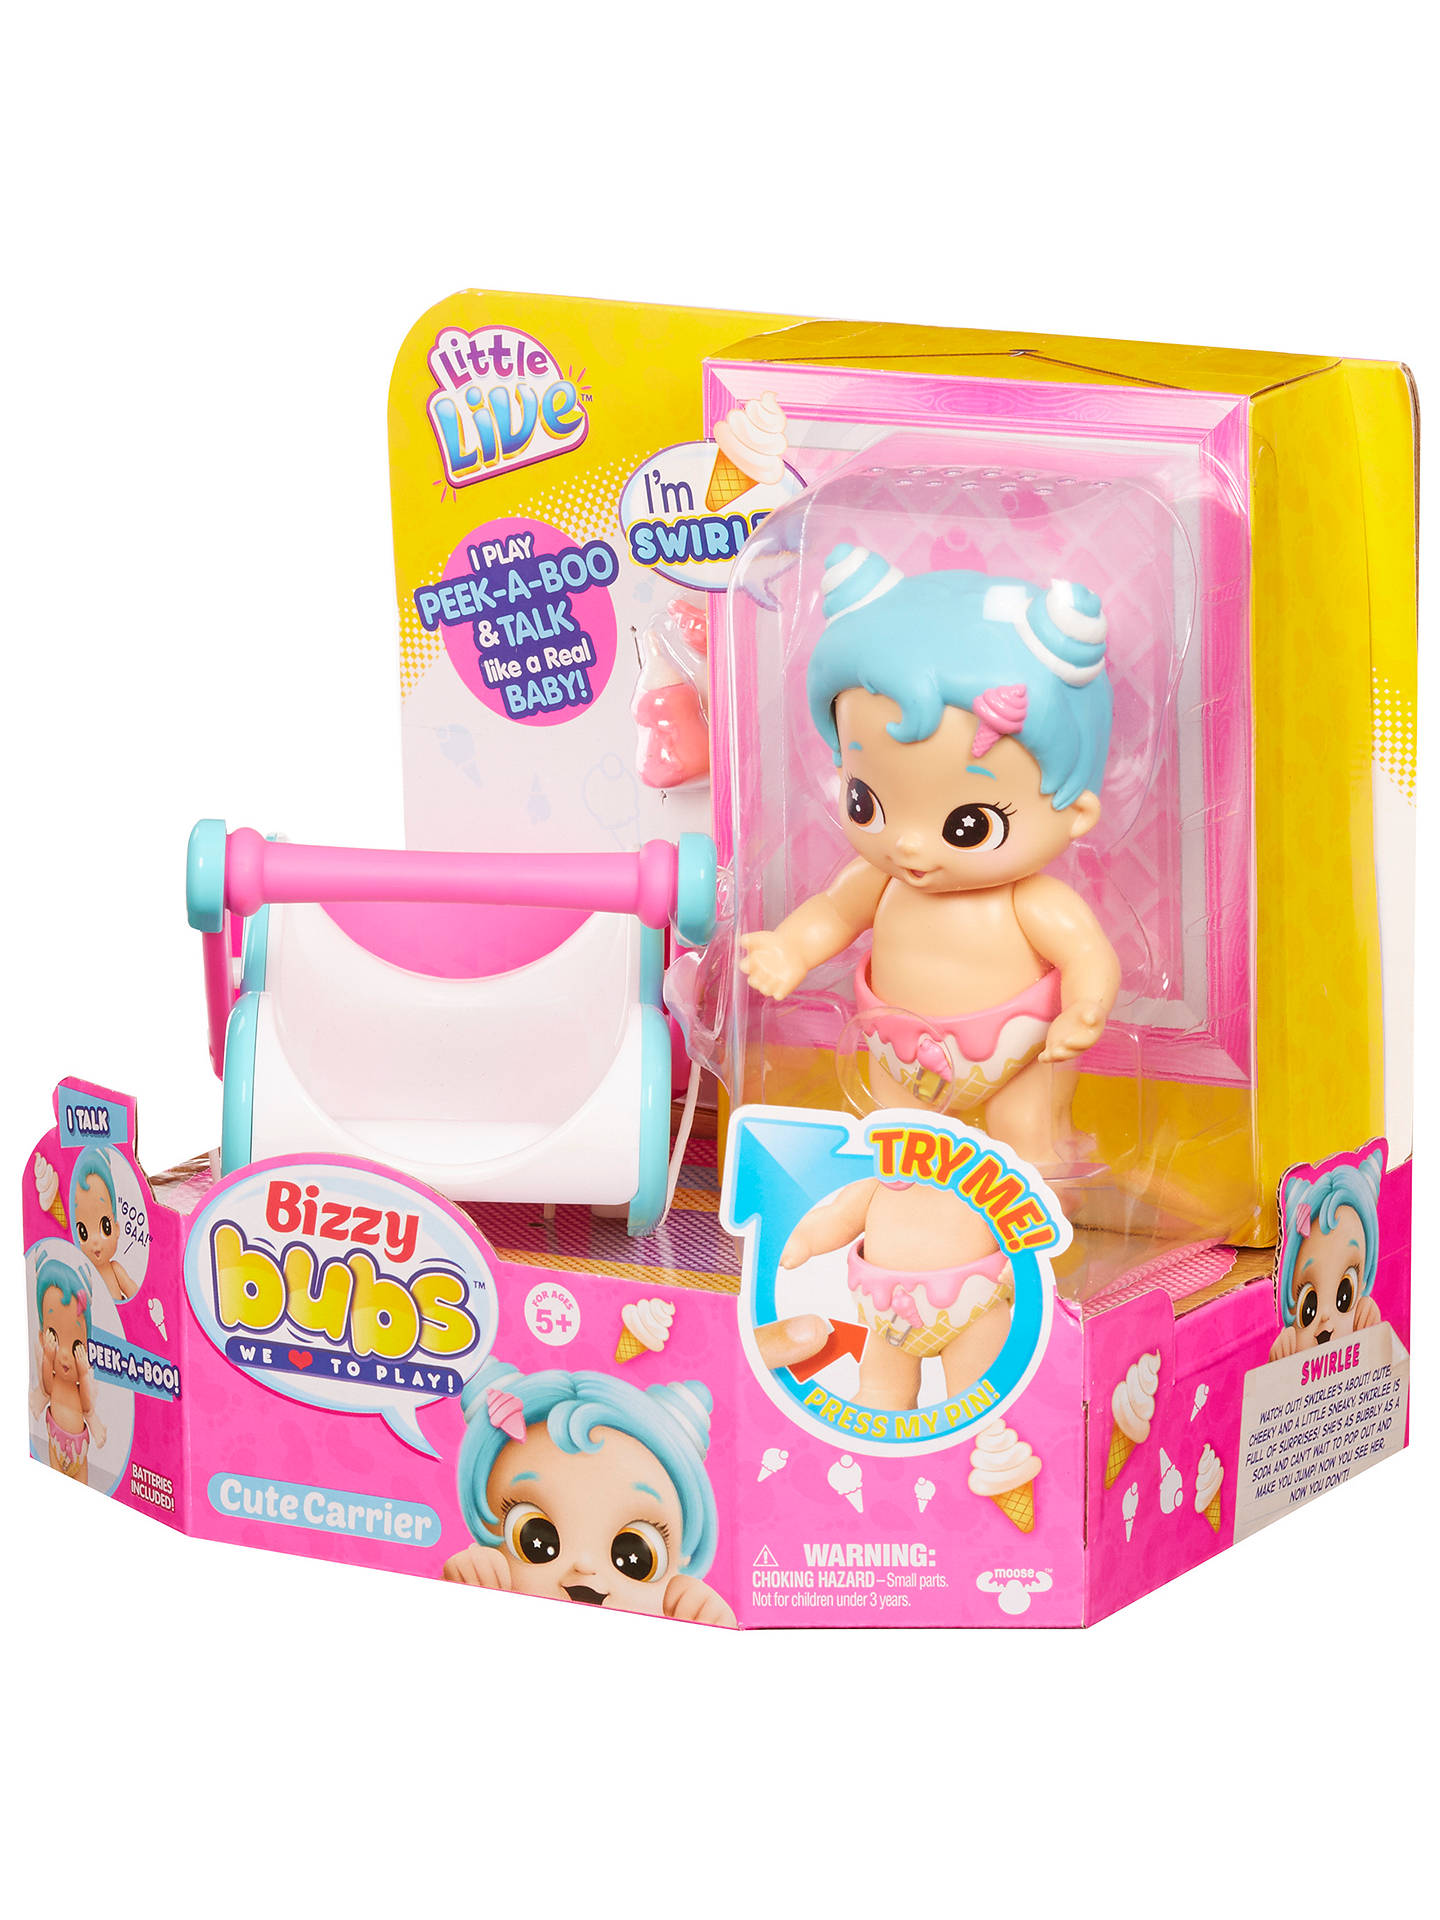 Little Live Pets Bizzy Bubs Cute Carrier with Peek-A-Boo Baby Swirlee